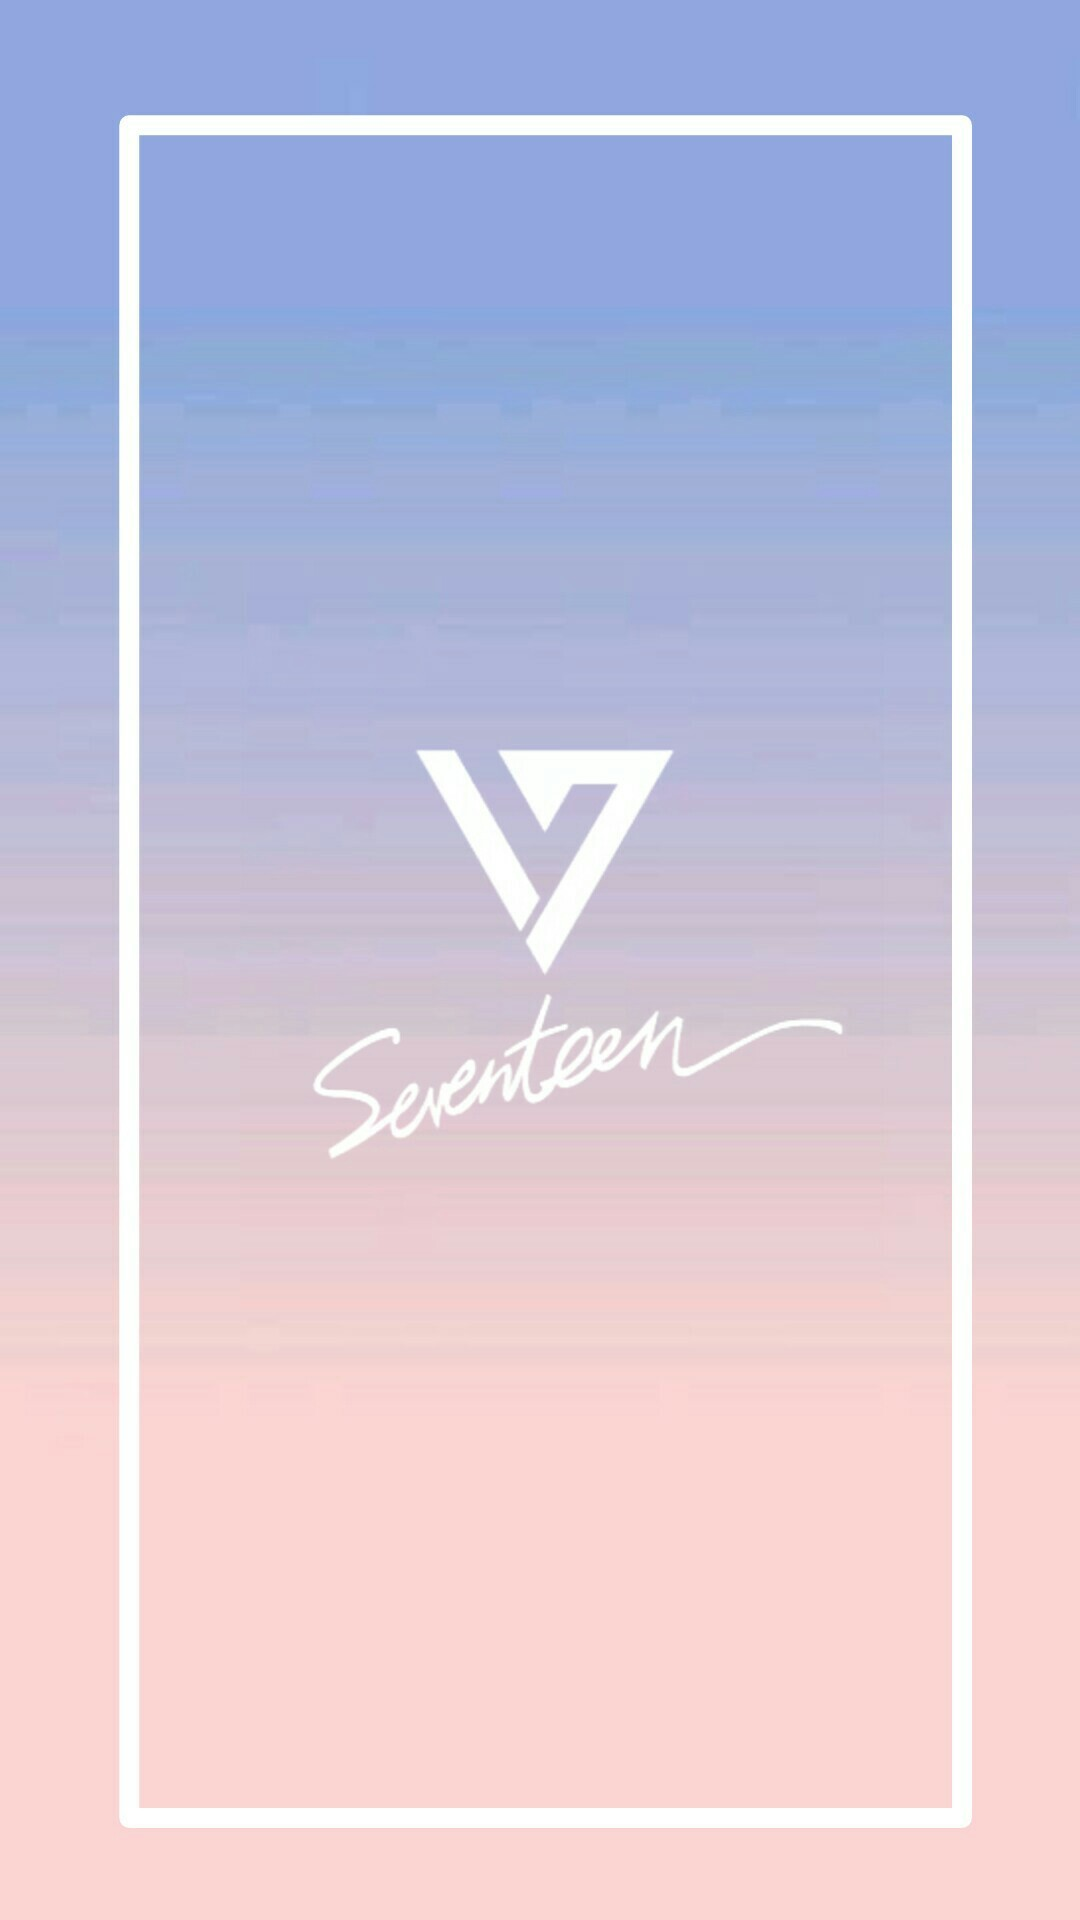 1080x1920 Seventeen official color wallpaper